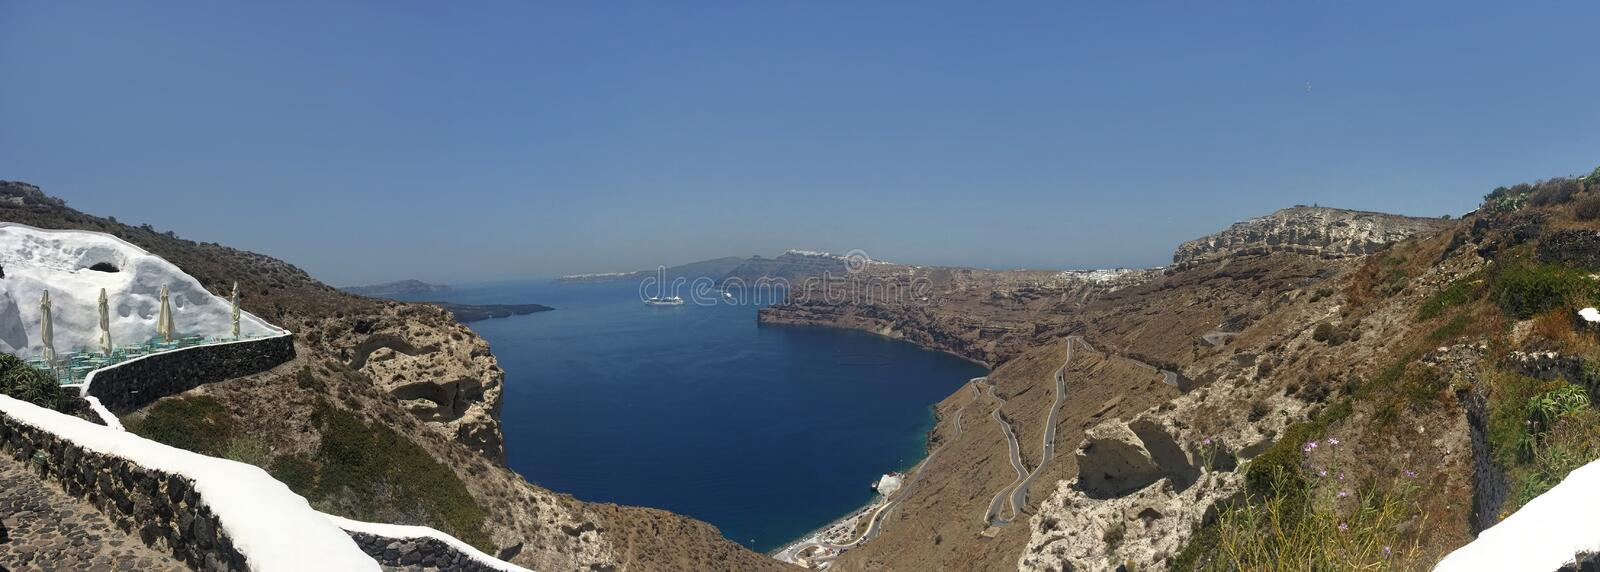 Santorini Island, Greece Panoramic View During a Summer Day from Megalochori stock photography